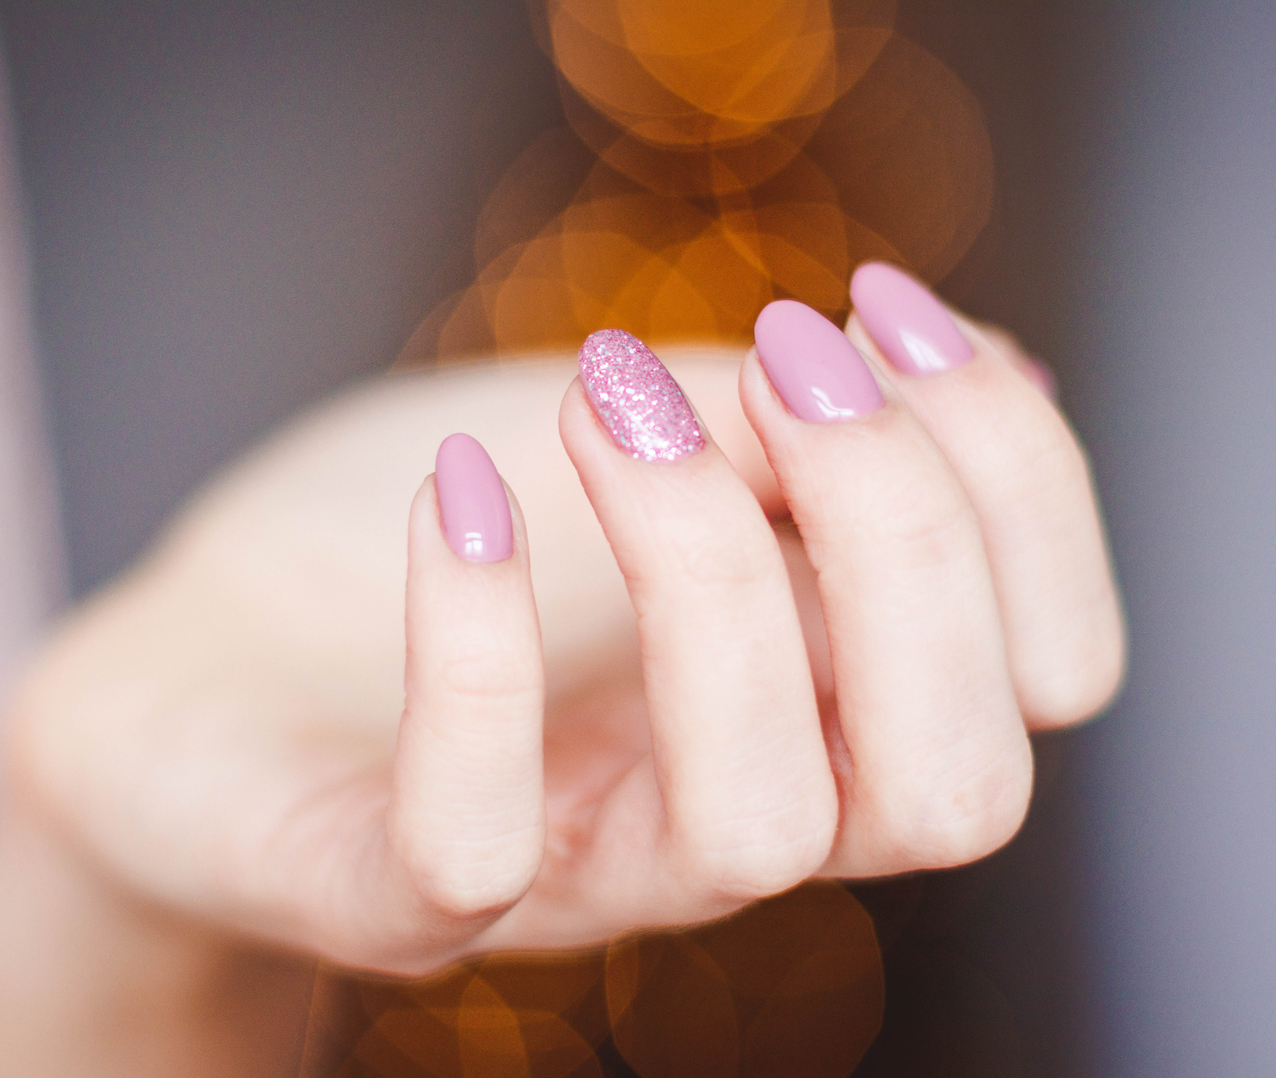 Why You Should Use Toxin-Free Nail Lacquer Remover